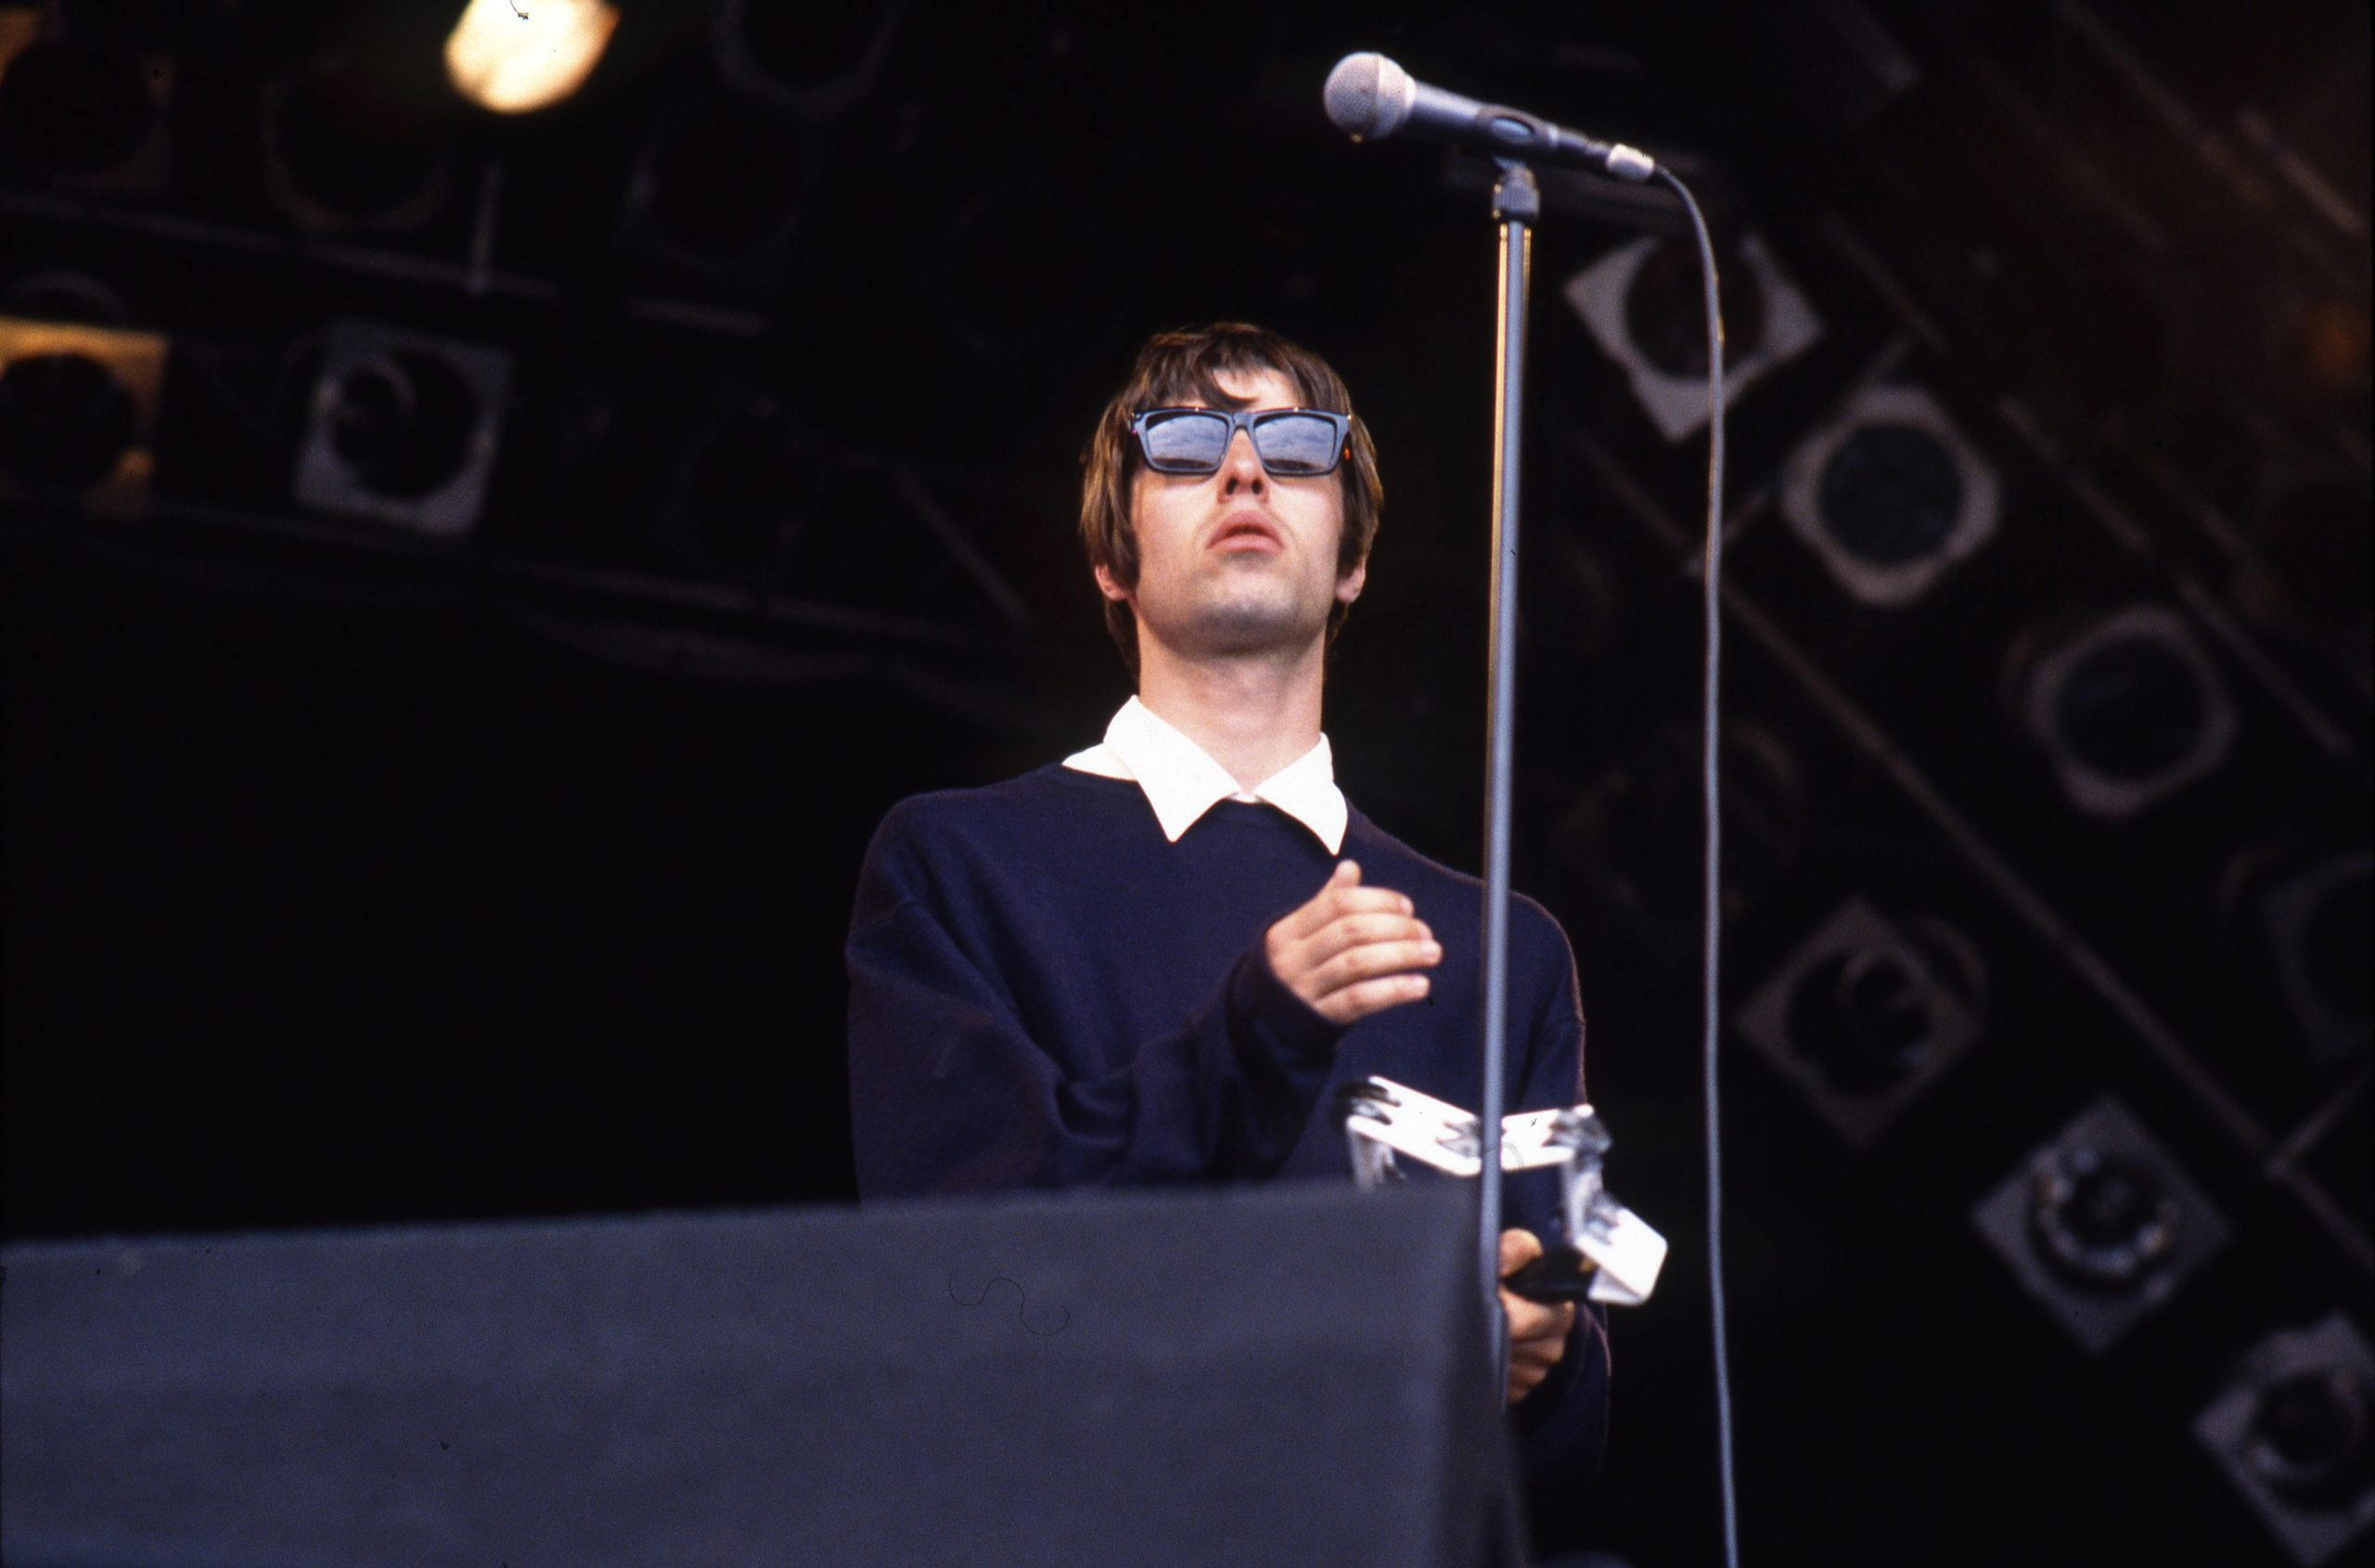 This was the first presentation of Oasis in Top Of The Pops